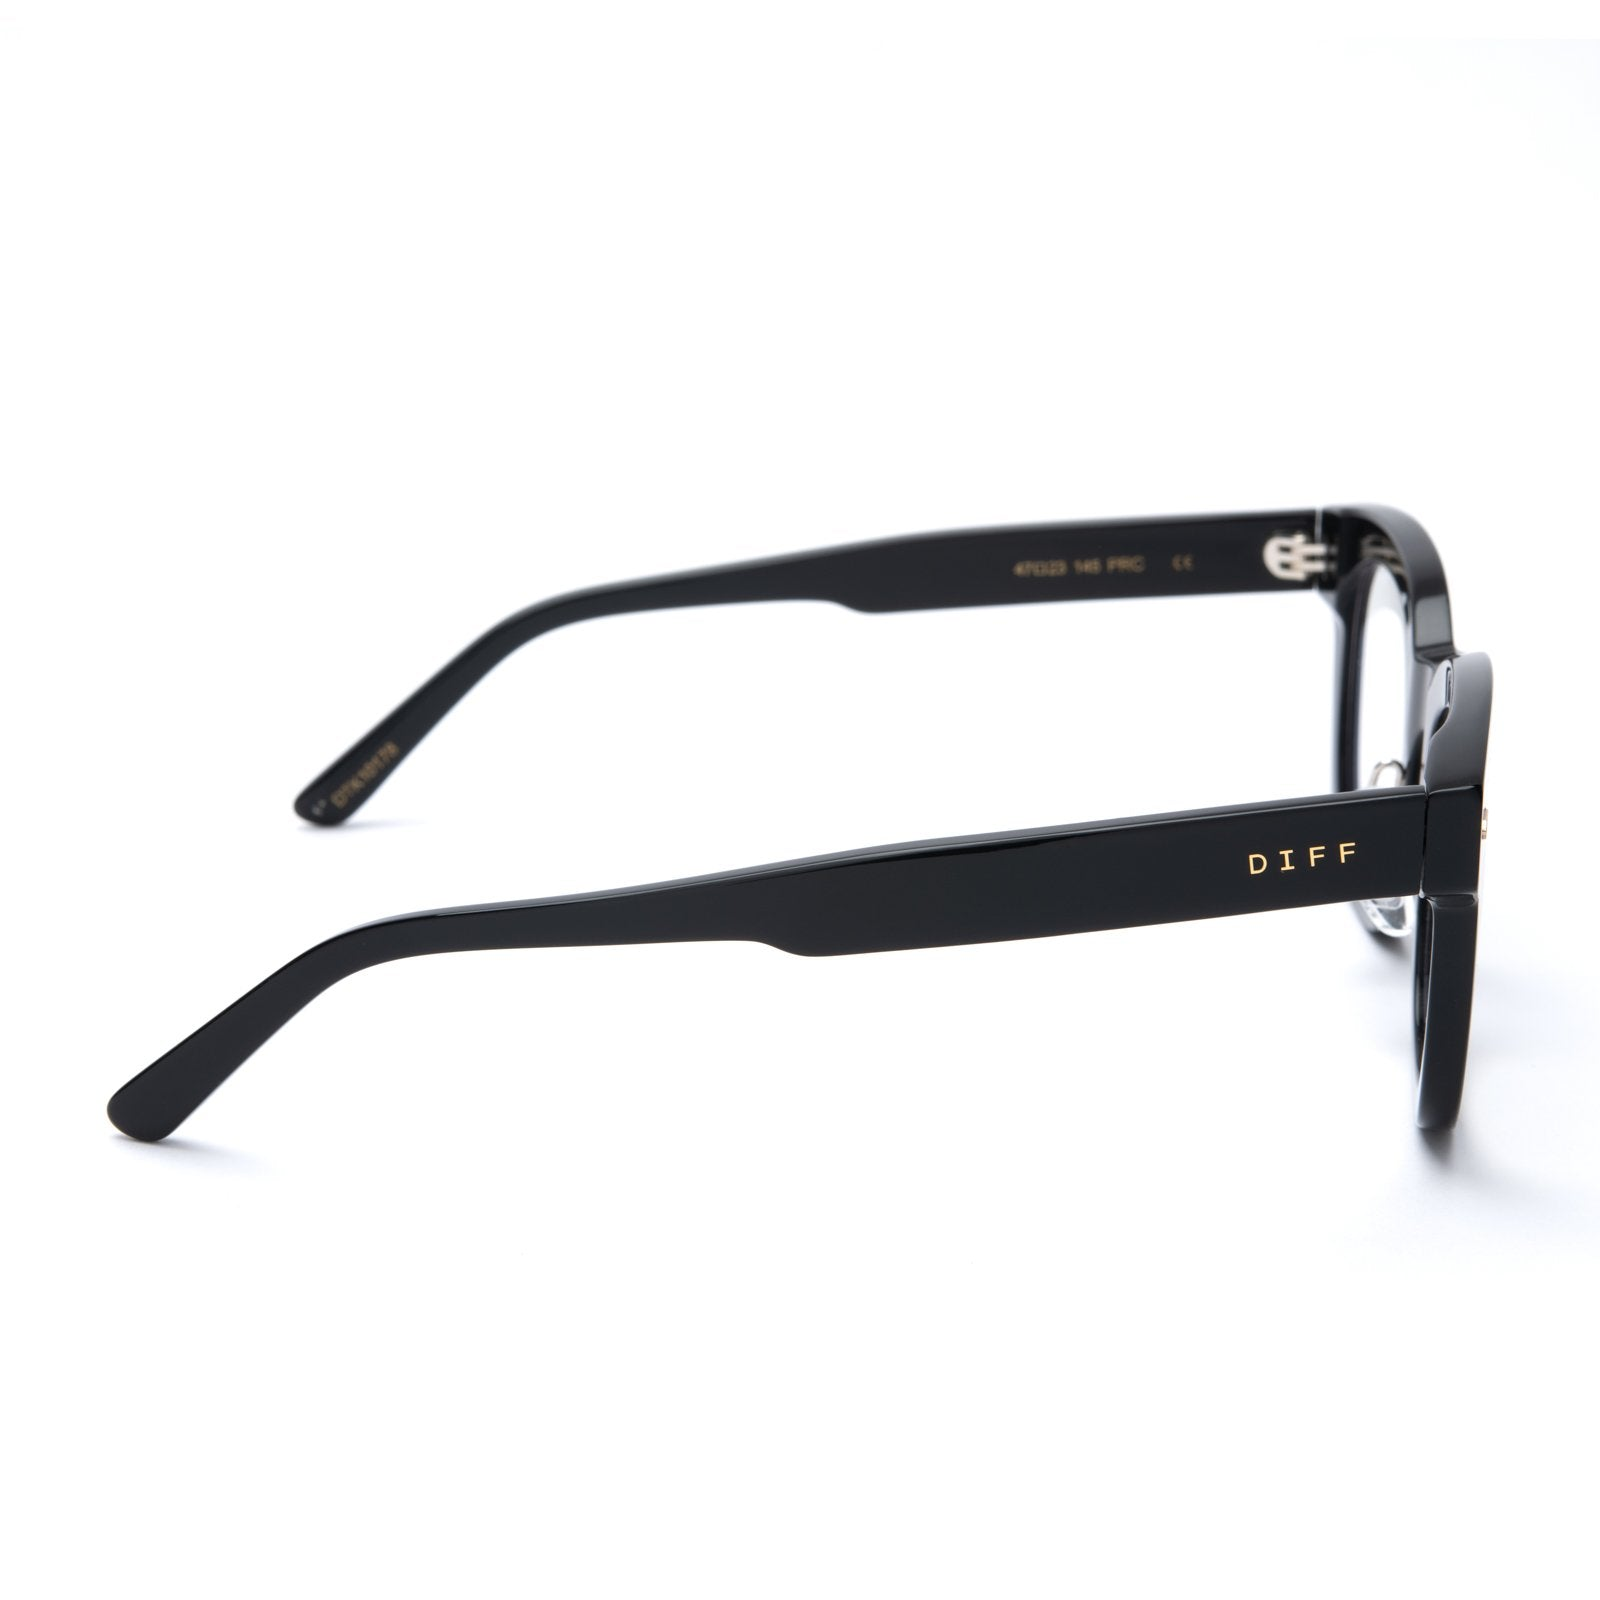 Summer eyeglasses with black frames and blue light technology lens side view